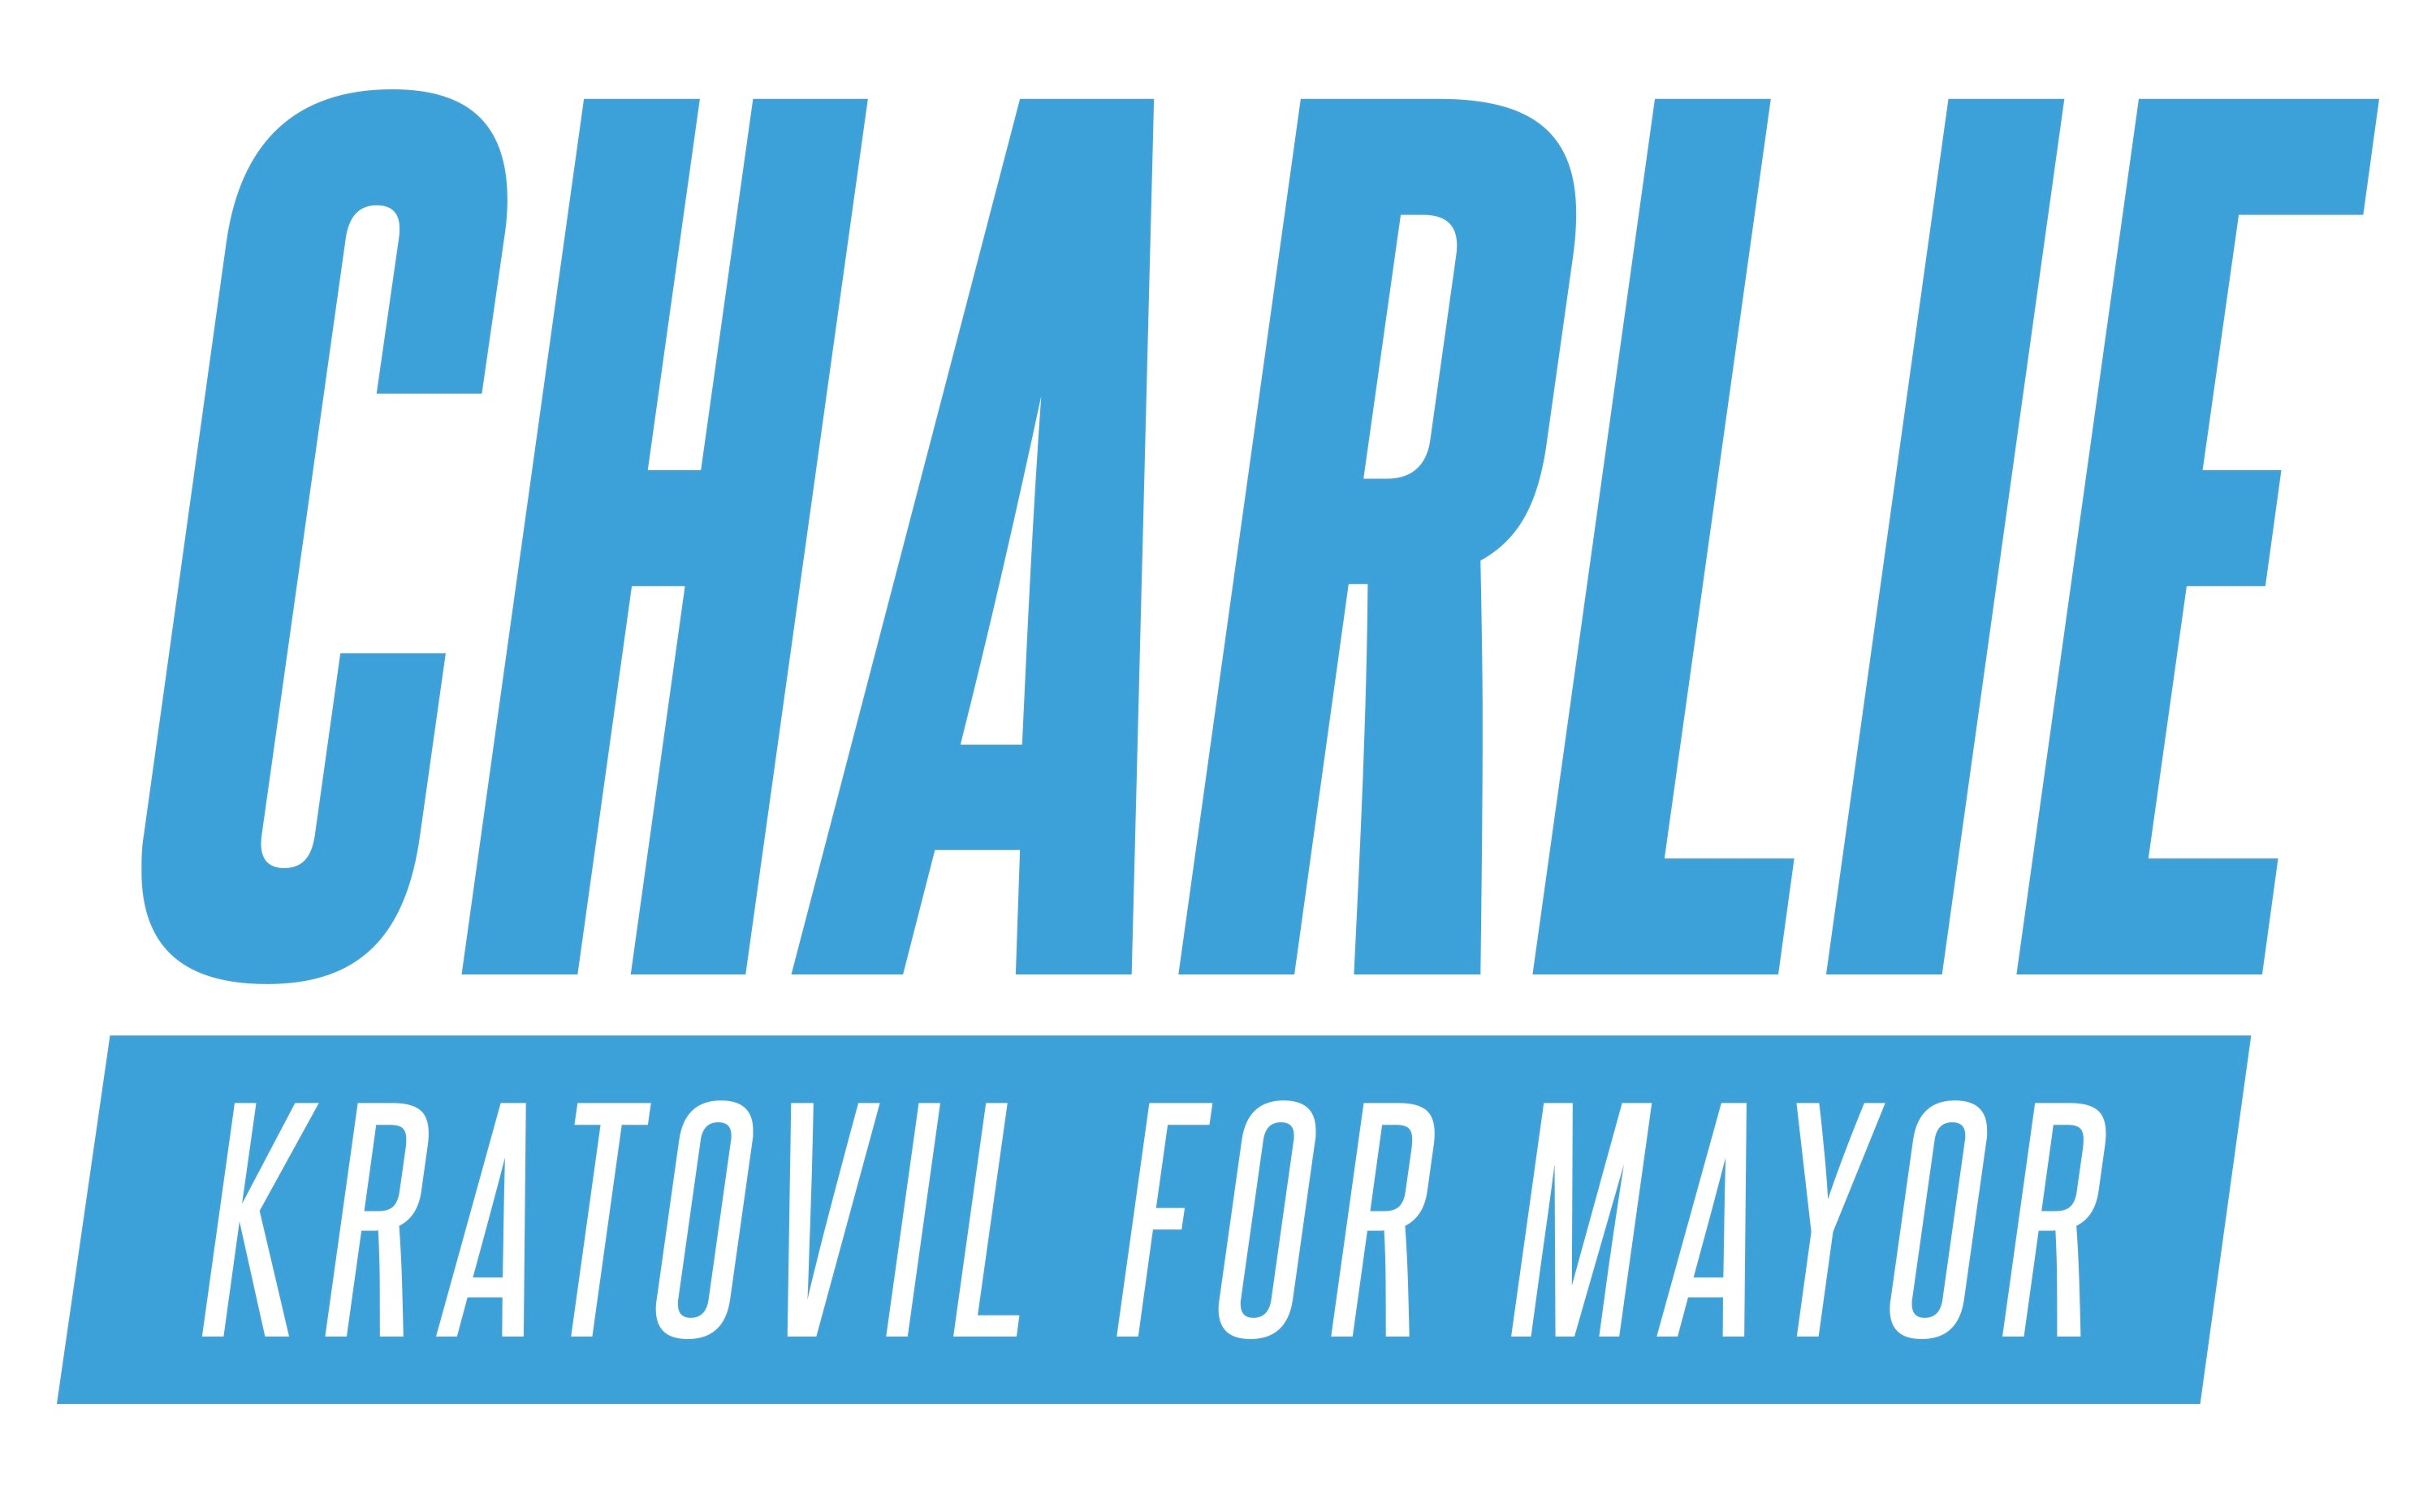 Charlie Kratovil For Mayor